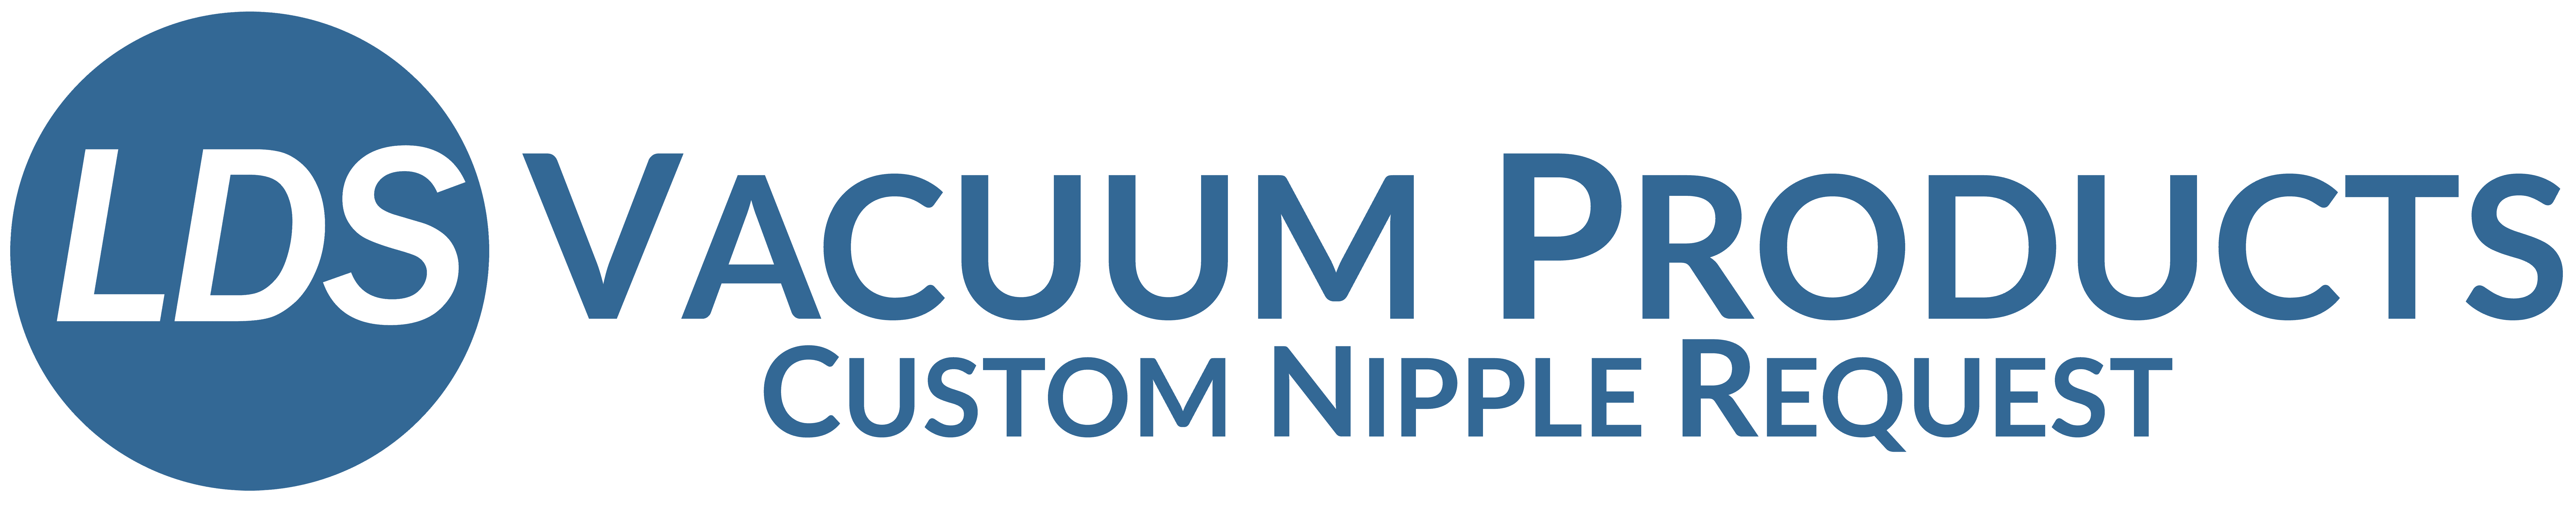 LDS Vacuum Products Custom Nipple Request